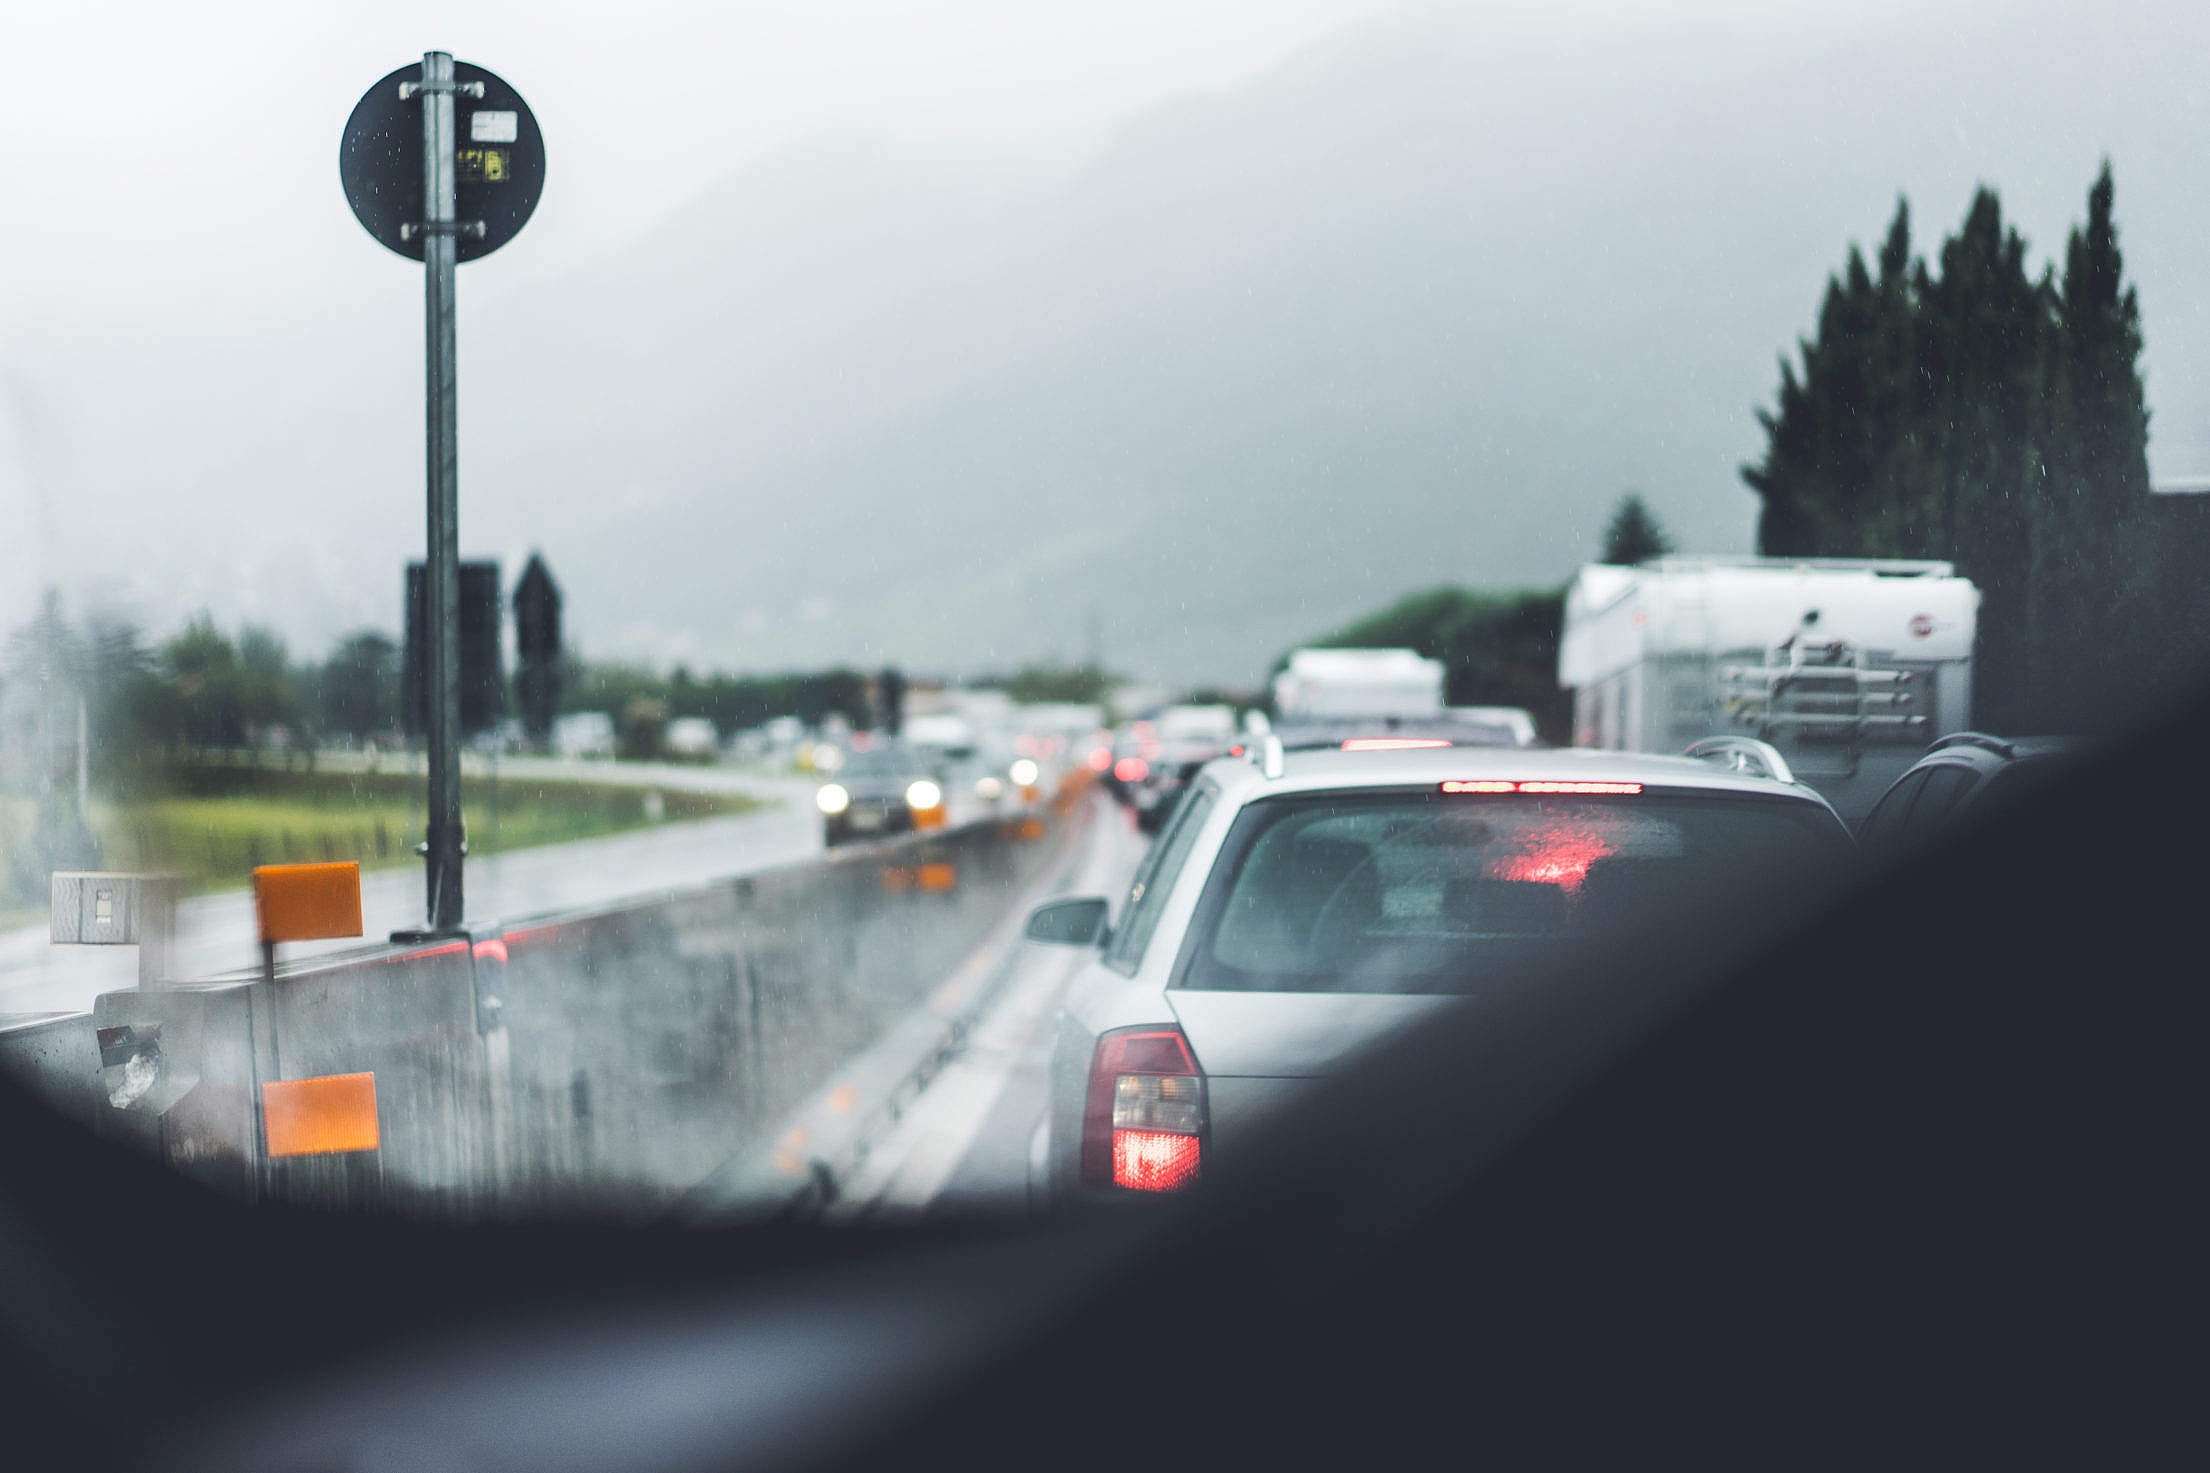 Traffic Jam and Bad Weather Free Stock Photo